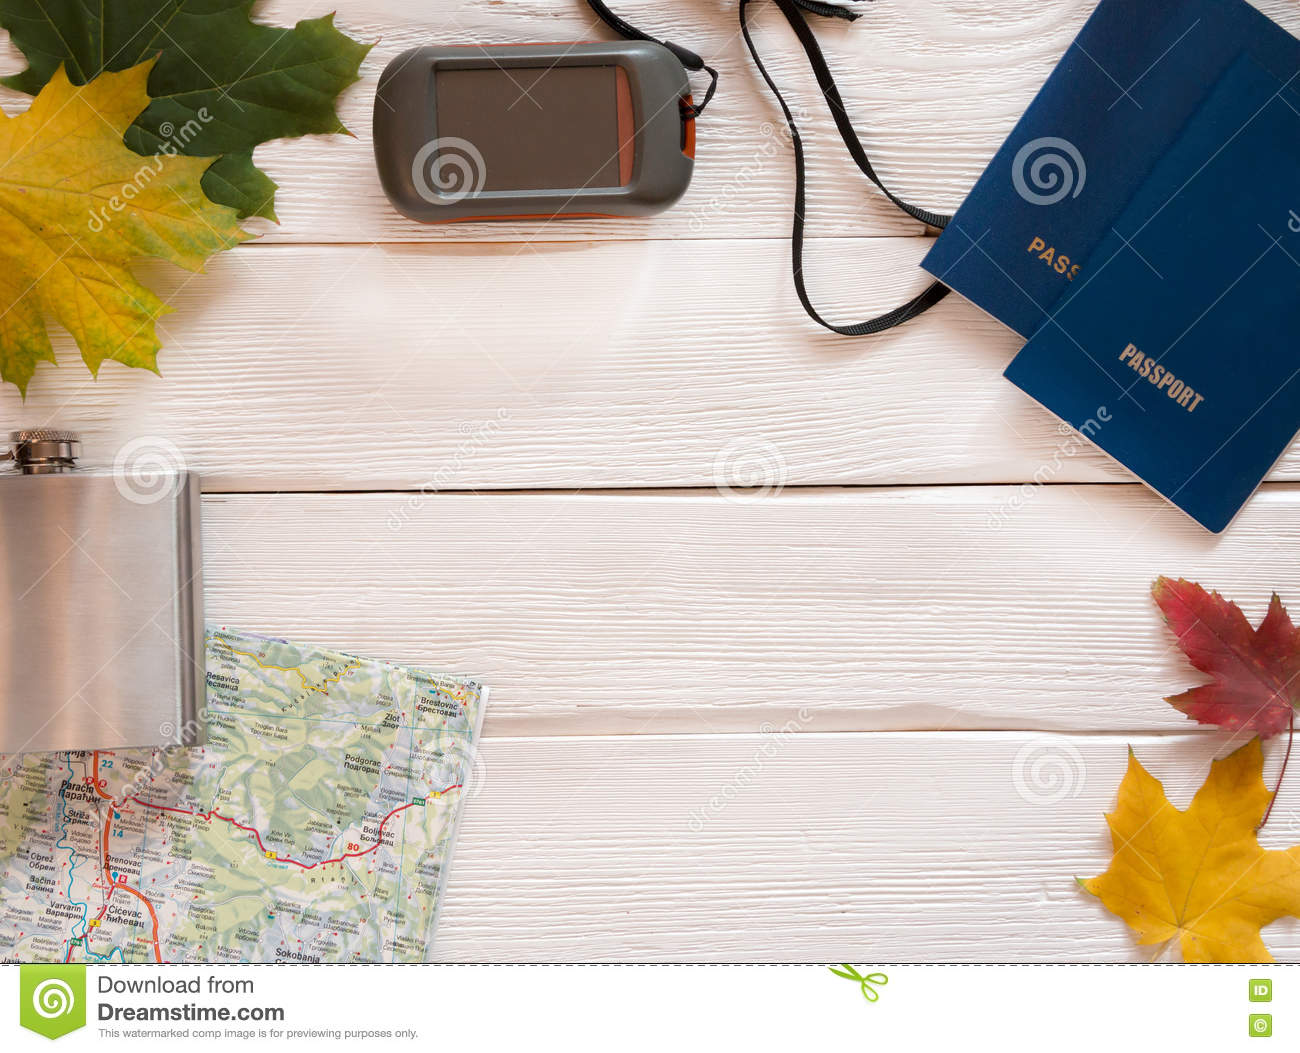 Travel Items For Trip With Map, Passports, GPS And Hiking